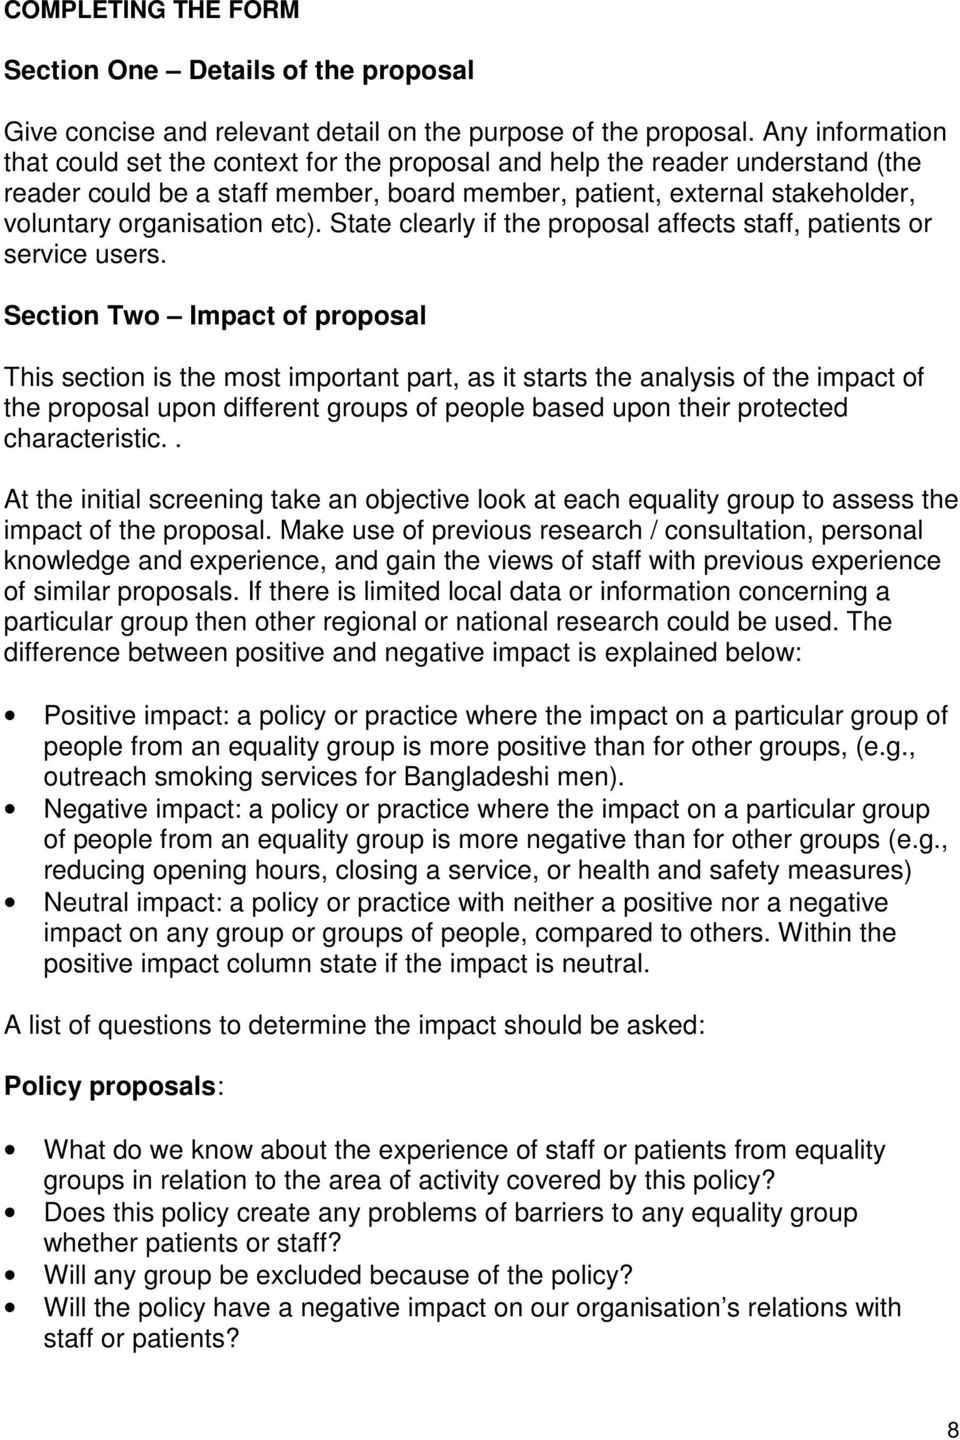 etc). State clearly if the proposal affects staff, patients or service users.